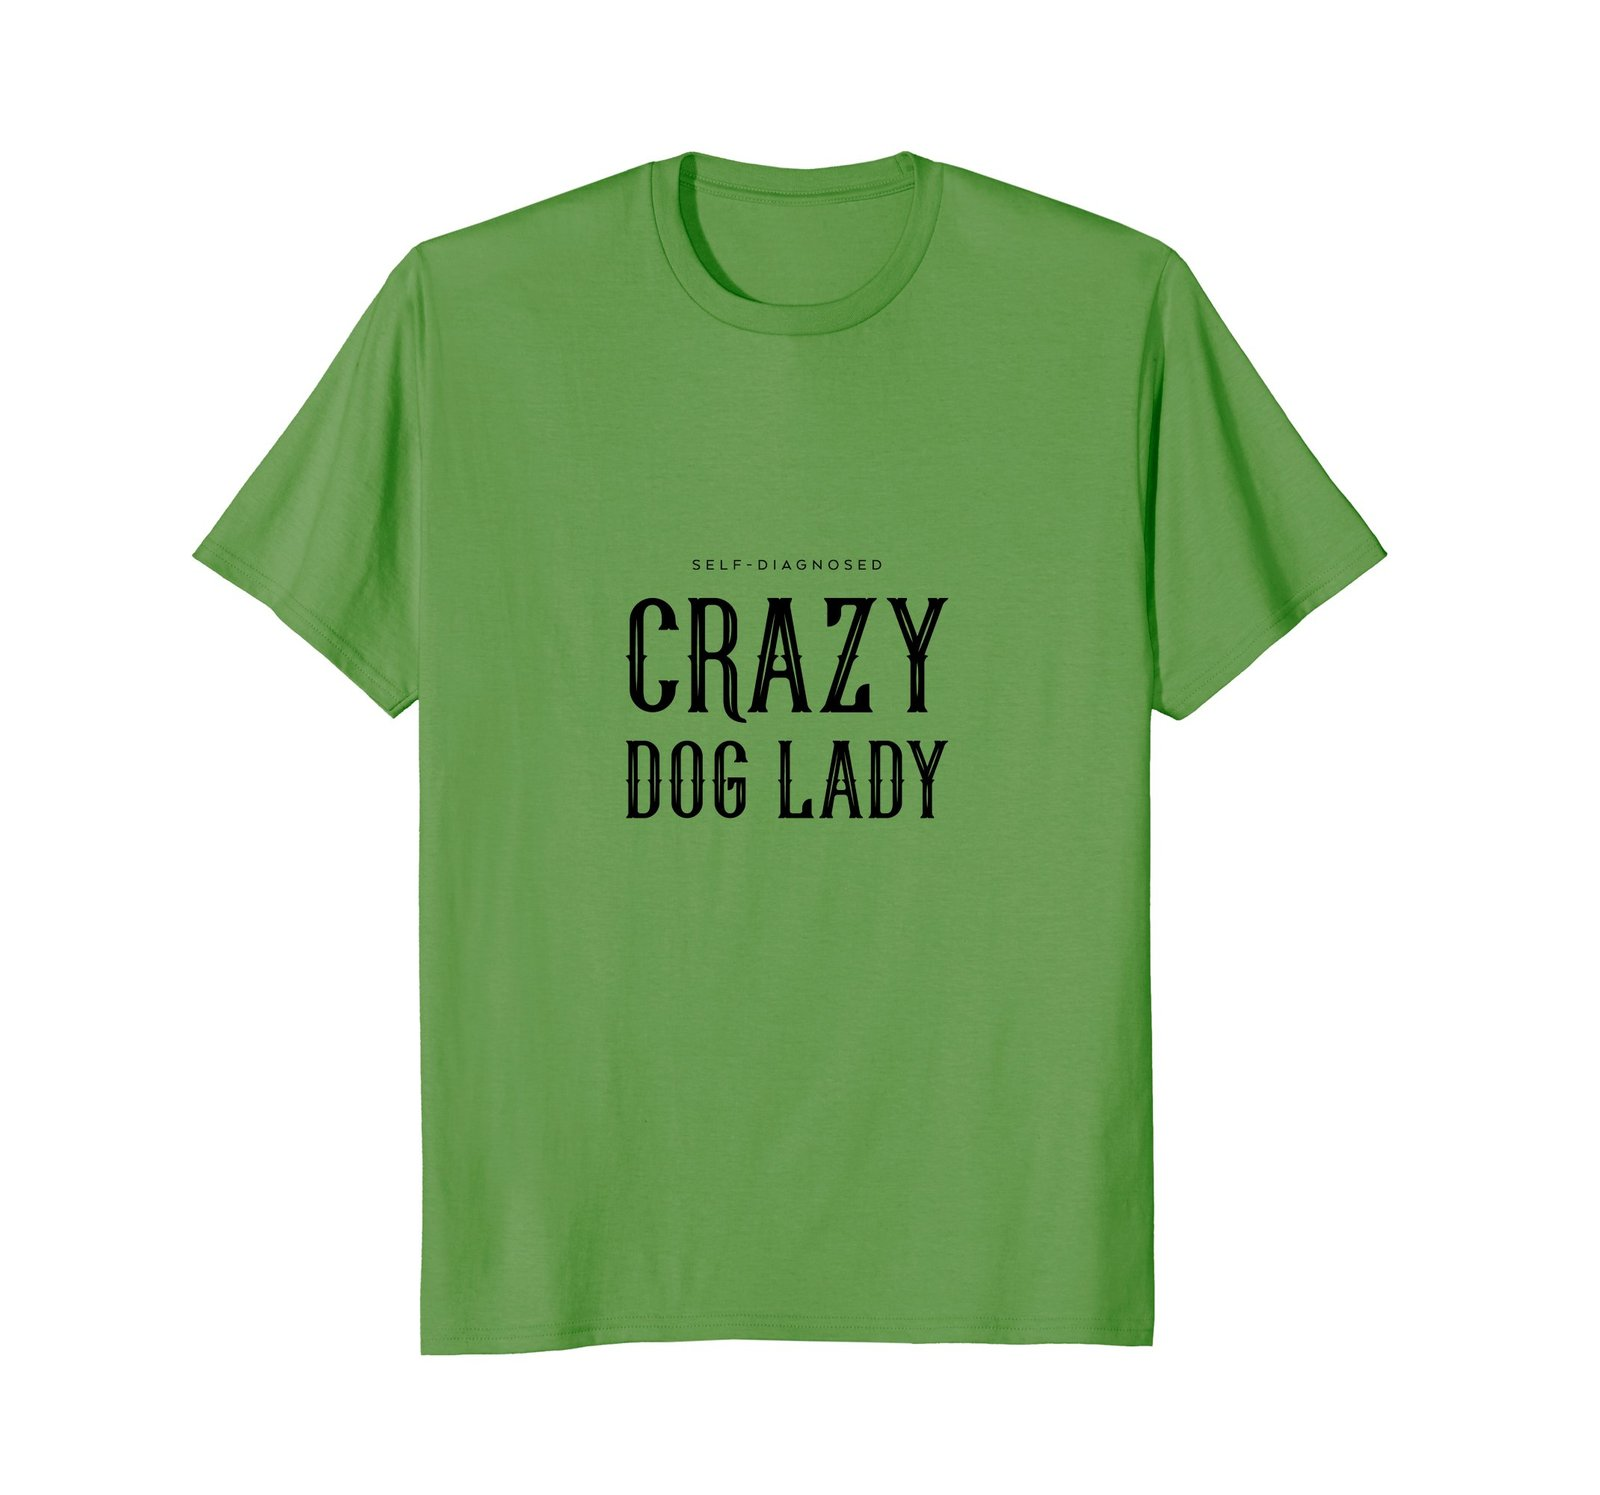 Self-Diagnosed crazy dog lady animal puppy pet t-shirt